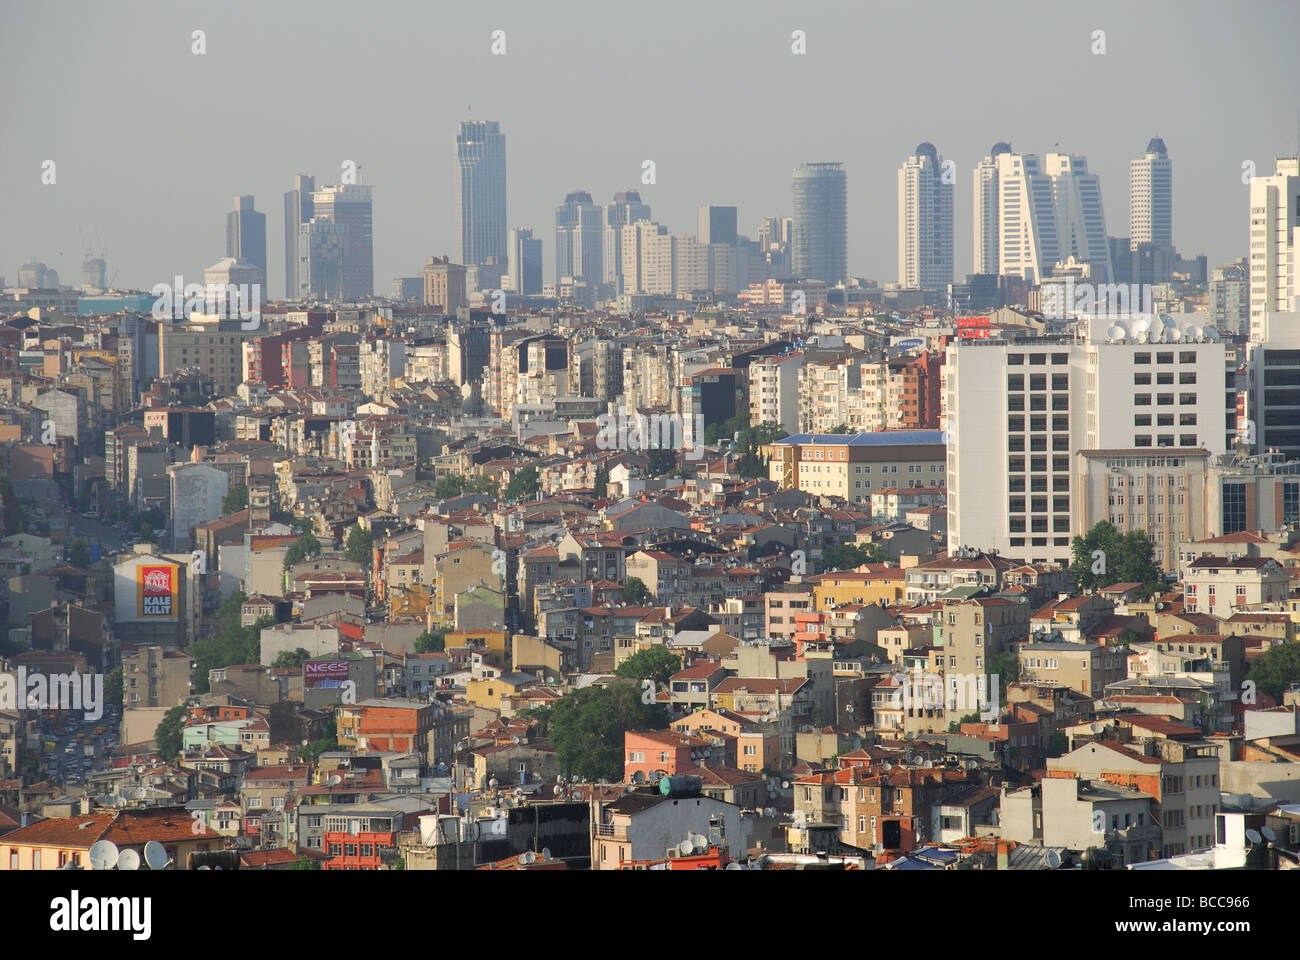 ISTANBUL, TURKEY. A view of the city north from Beyoglu district towards Levent. 2009. - Stock Image